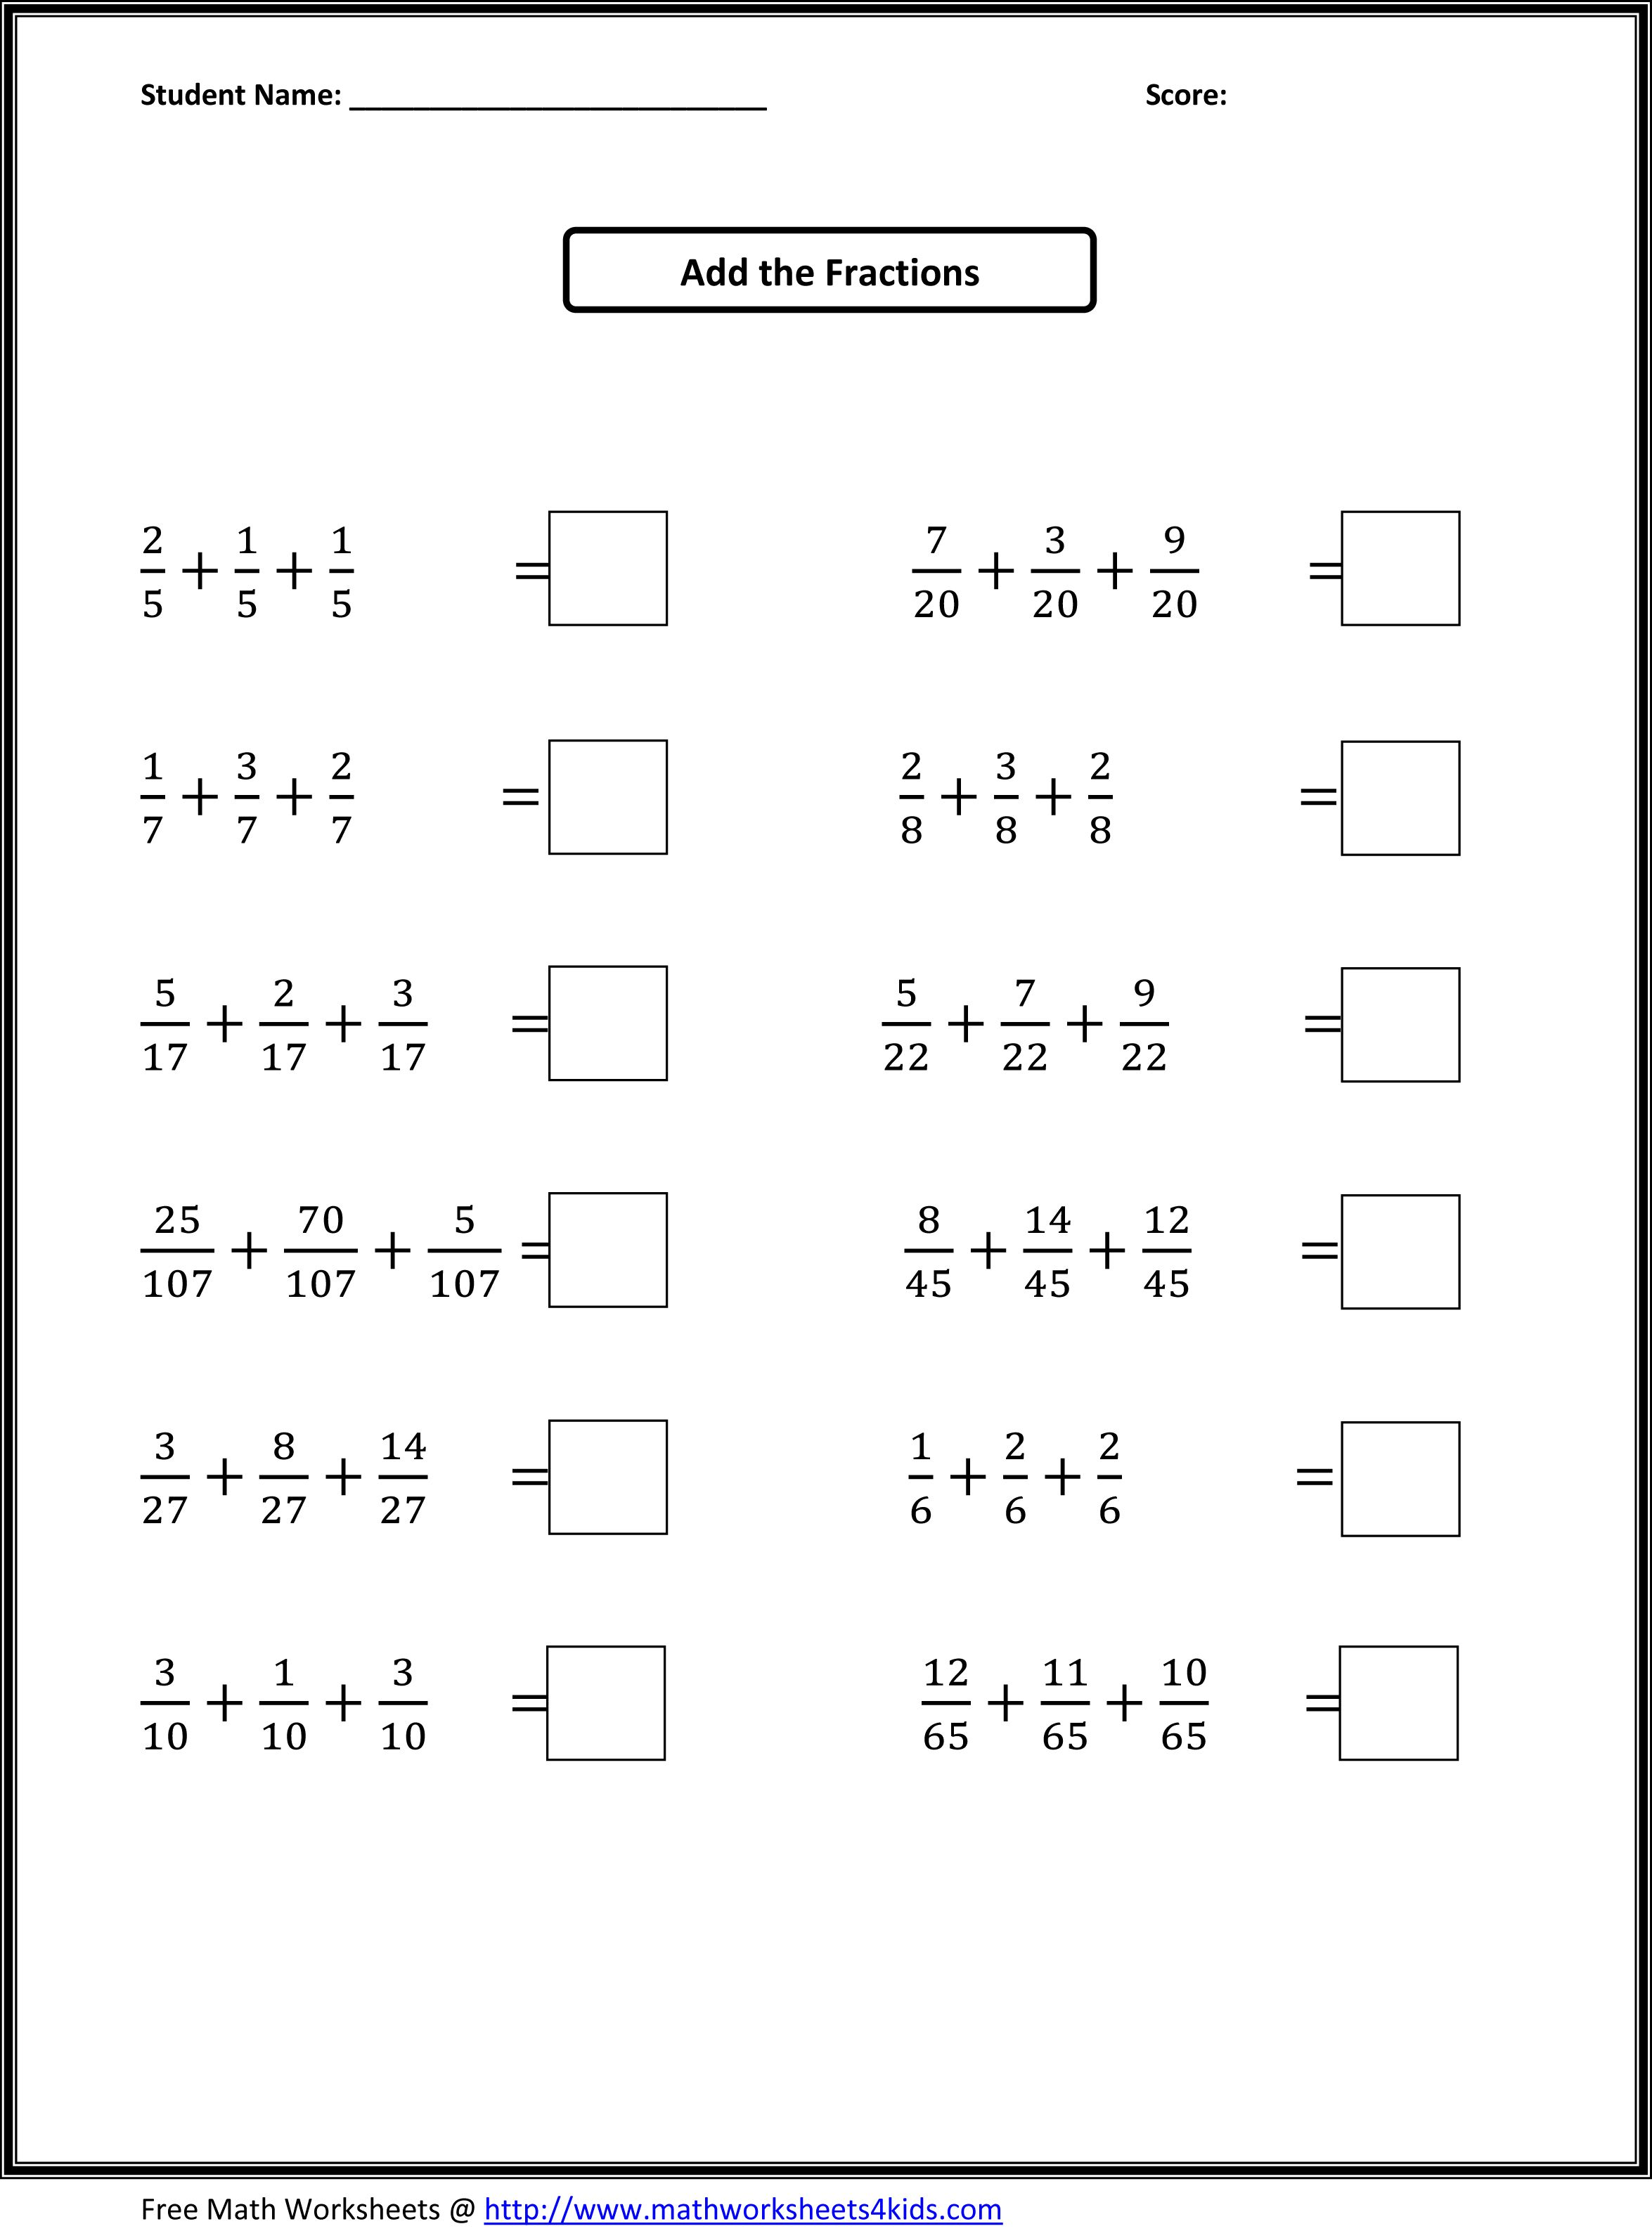 Worksheet 4 Grade Math Fractions printable worksheets by grade level and skill teaching ideas high quality equivalent fractions for photos